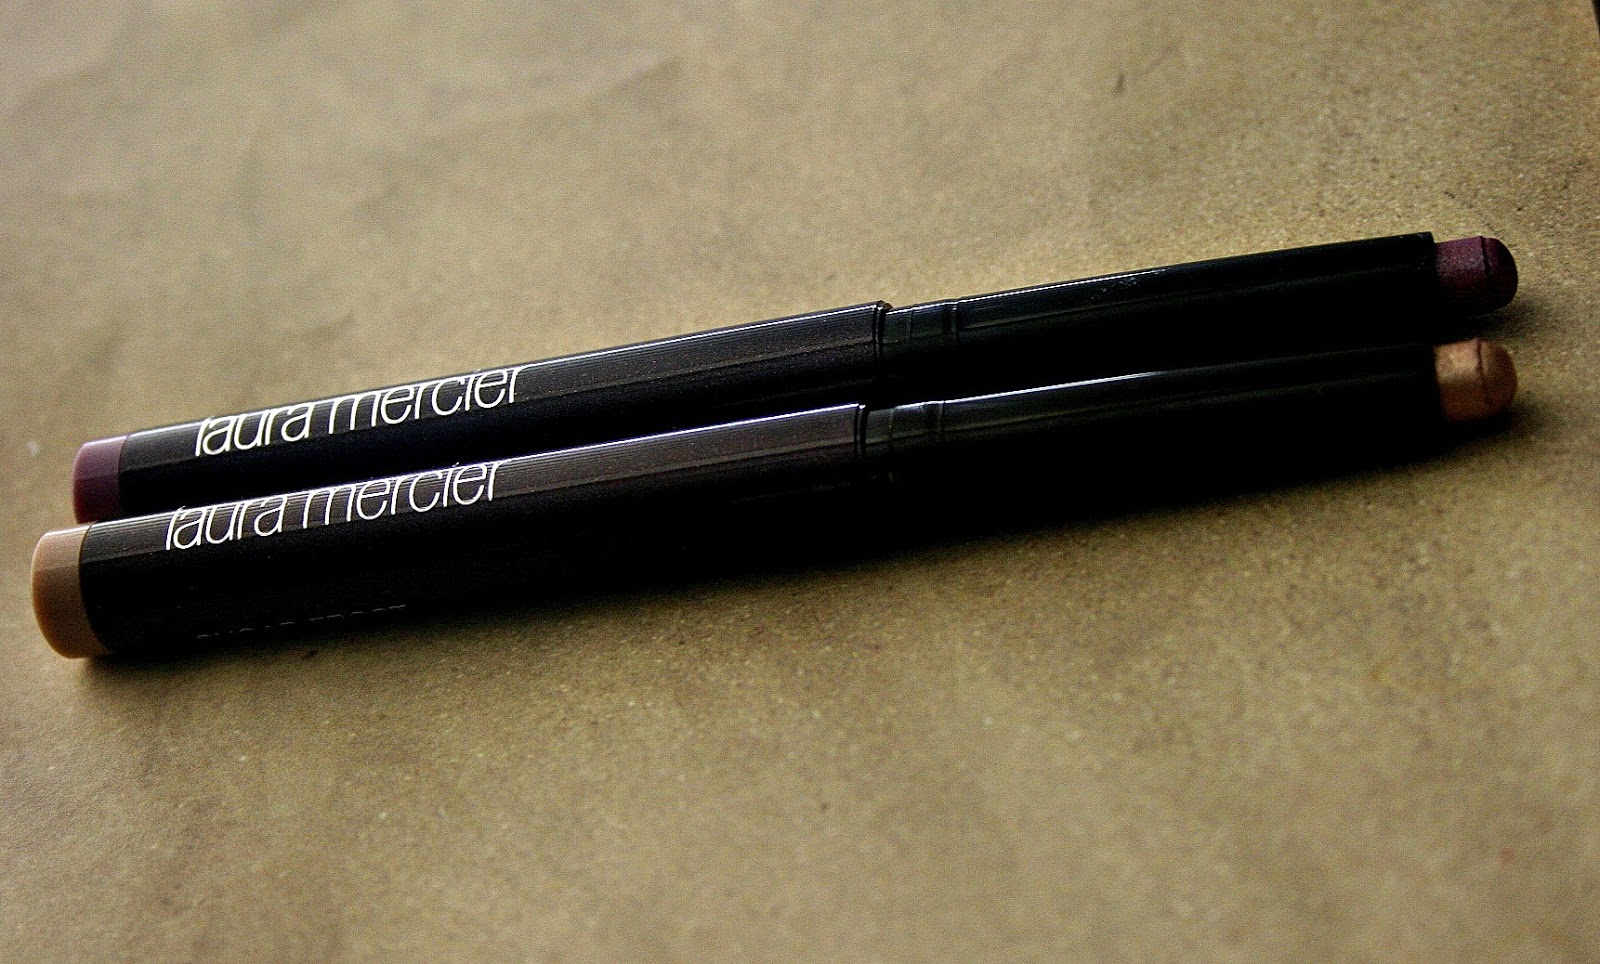 Laura Mercier Caviar Stick Eye Colors in Orchid & Sugar Frost Review, Photos & Swatches